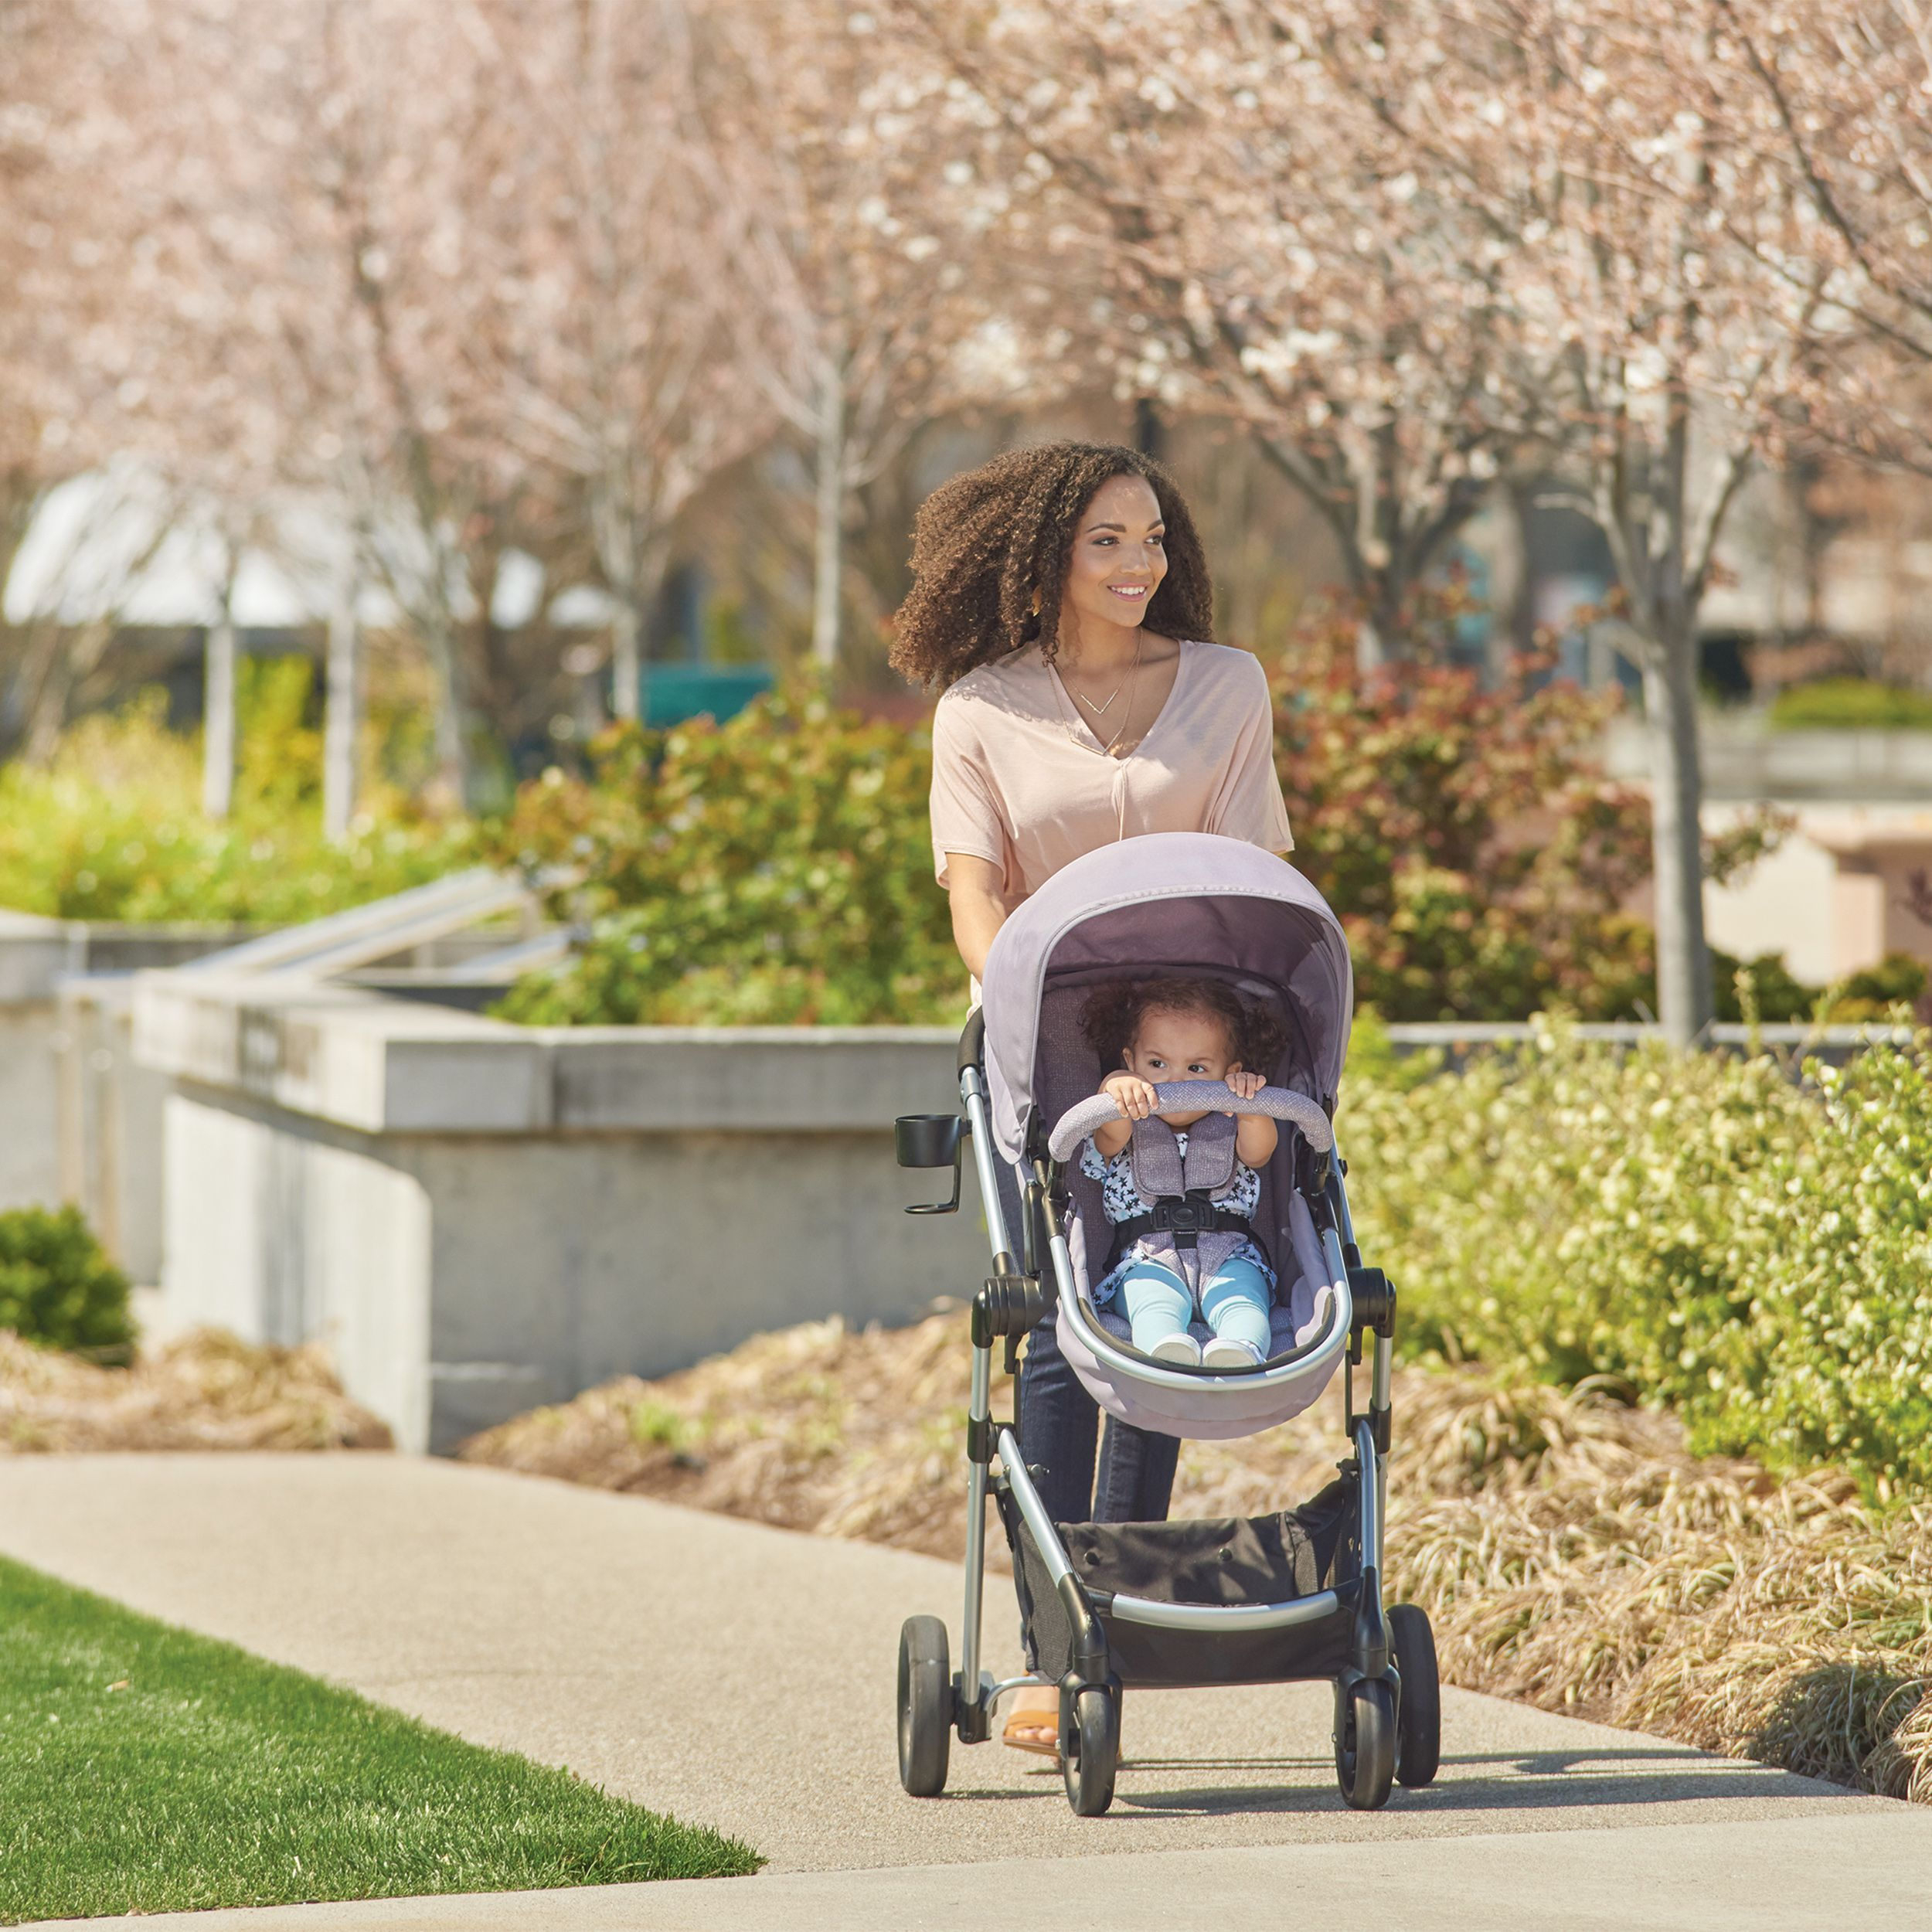 Summertime strolling with the Evenflo Pivot Travel System